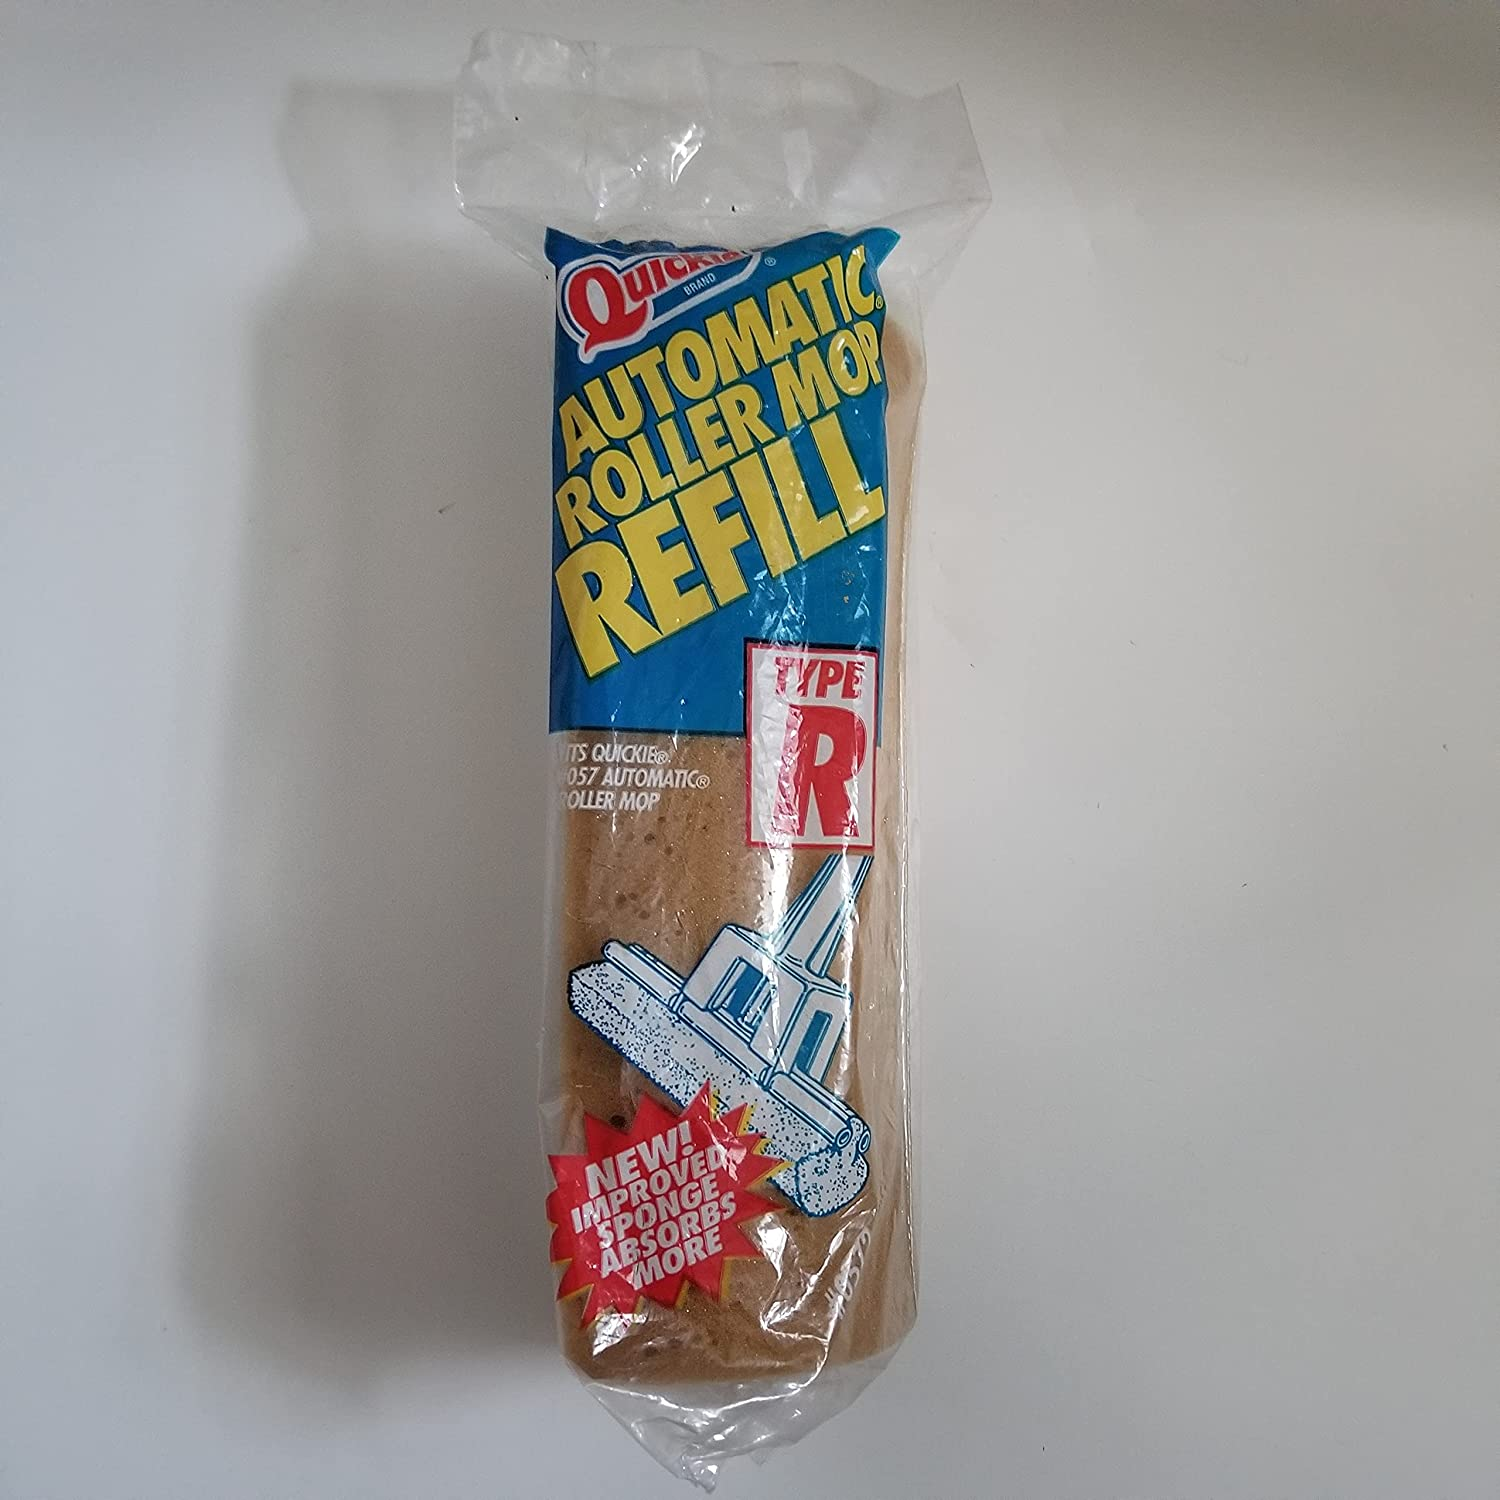 Quickie Original Sales of SALE items from new works Automatic Roller Super-cheap #057 Mop Refill